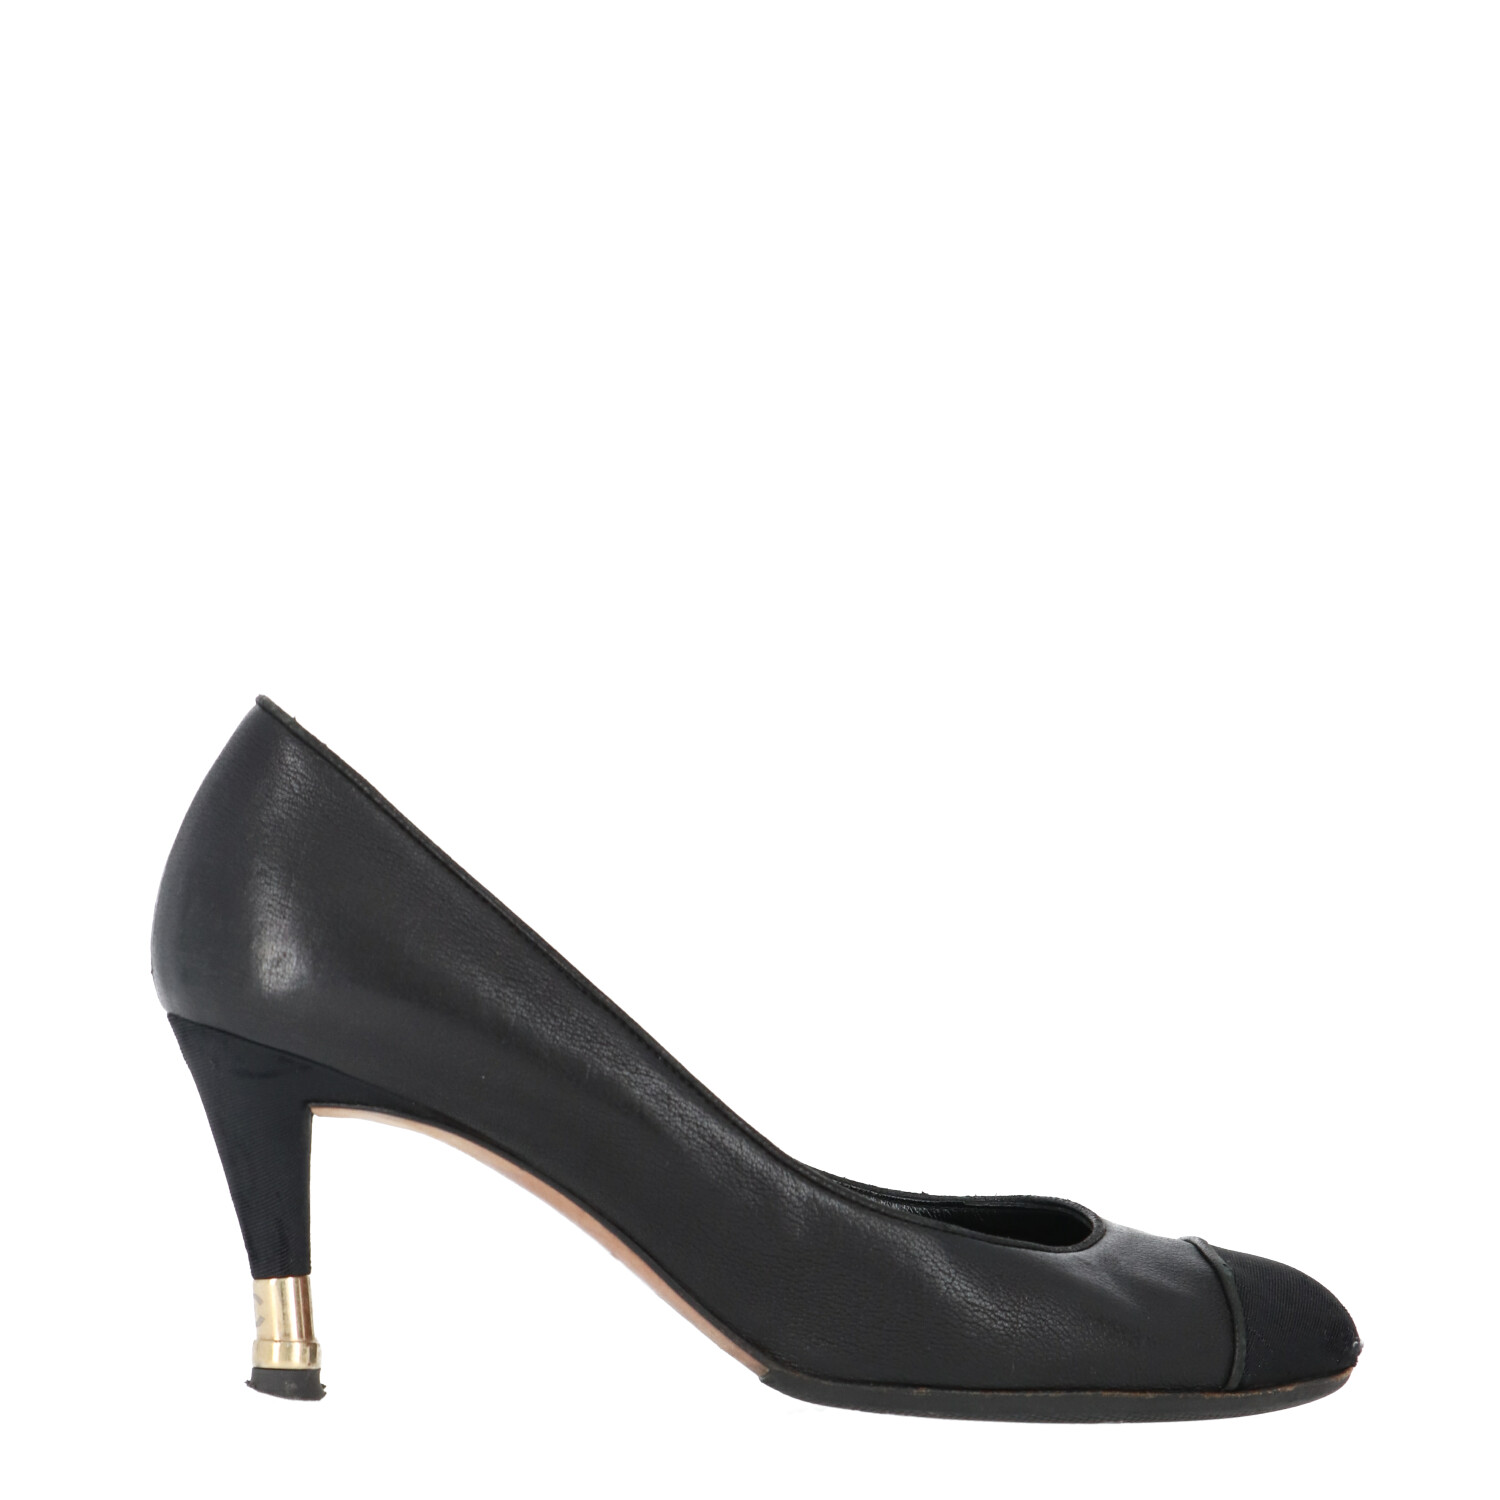 Chanel Black Calfskin Cap Toe Heels